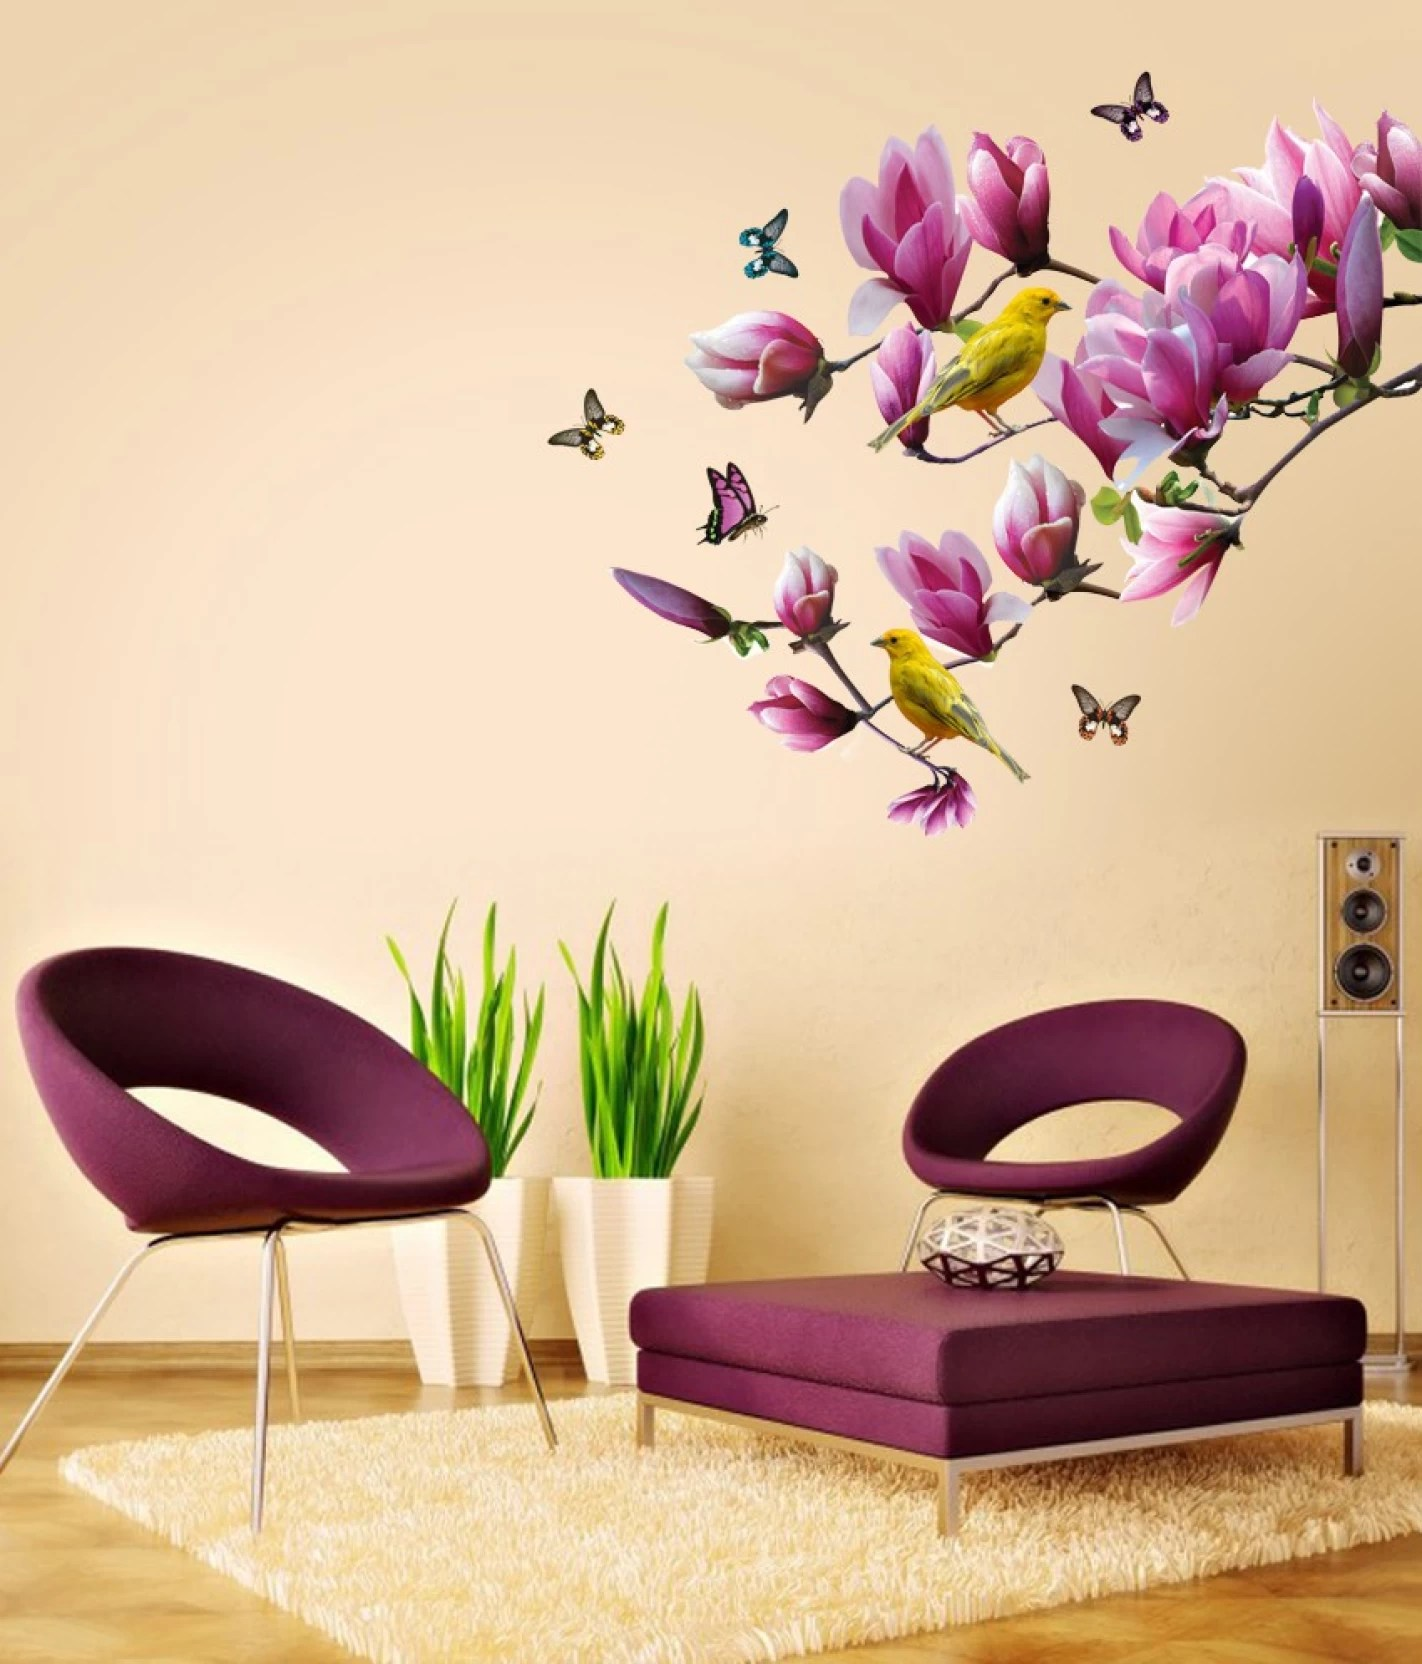 3d Wallpaper For Home Wall Price In India Aquire Extra Large Pvc Vinyl Sticker Price In India Buy